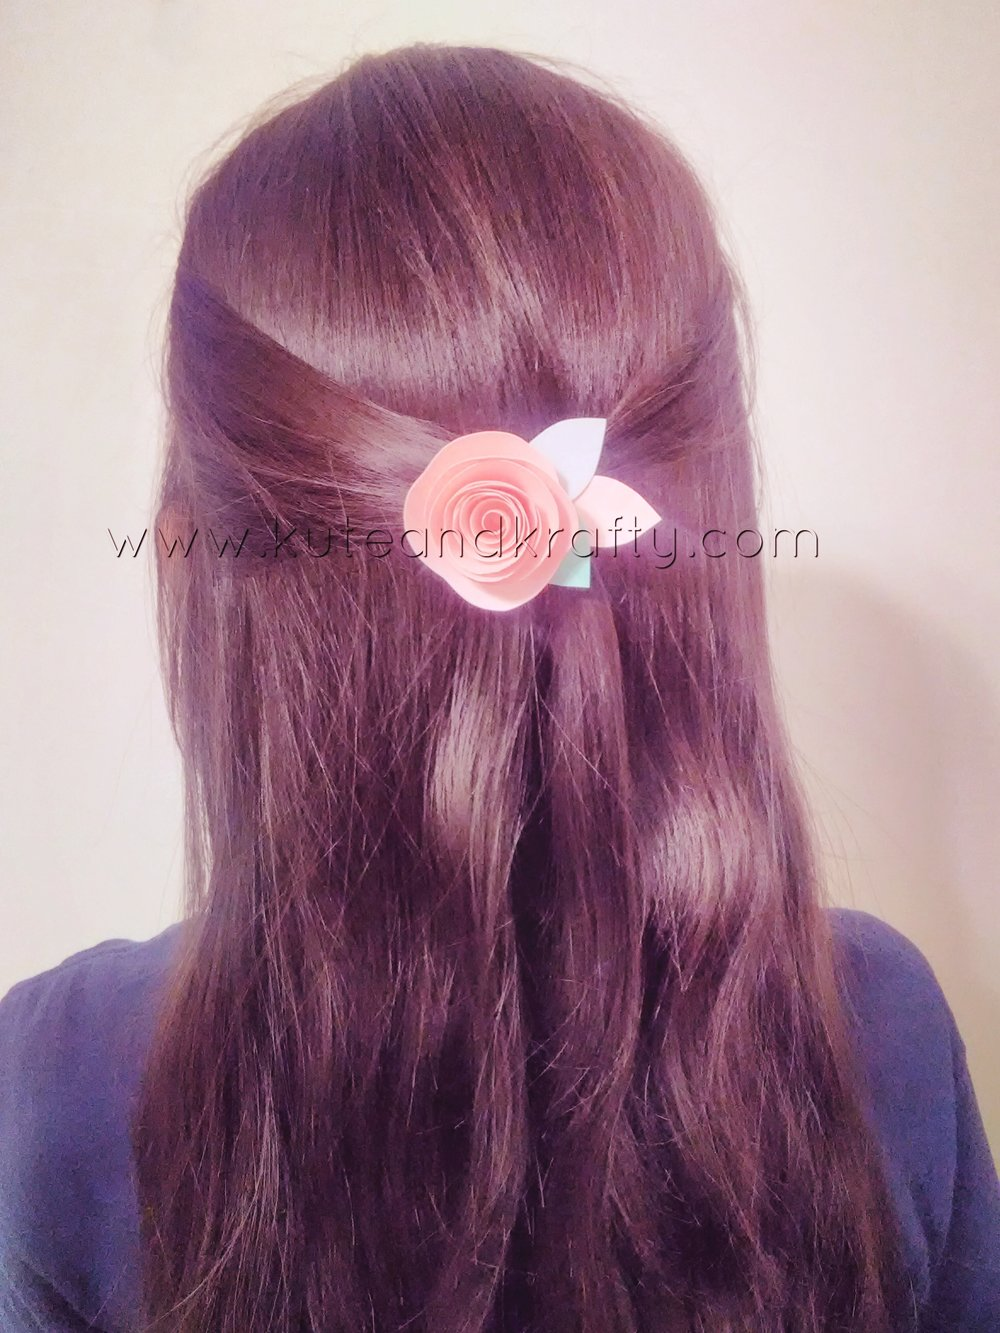 Dusty Rose Hair Barrette.jpg